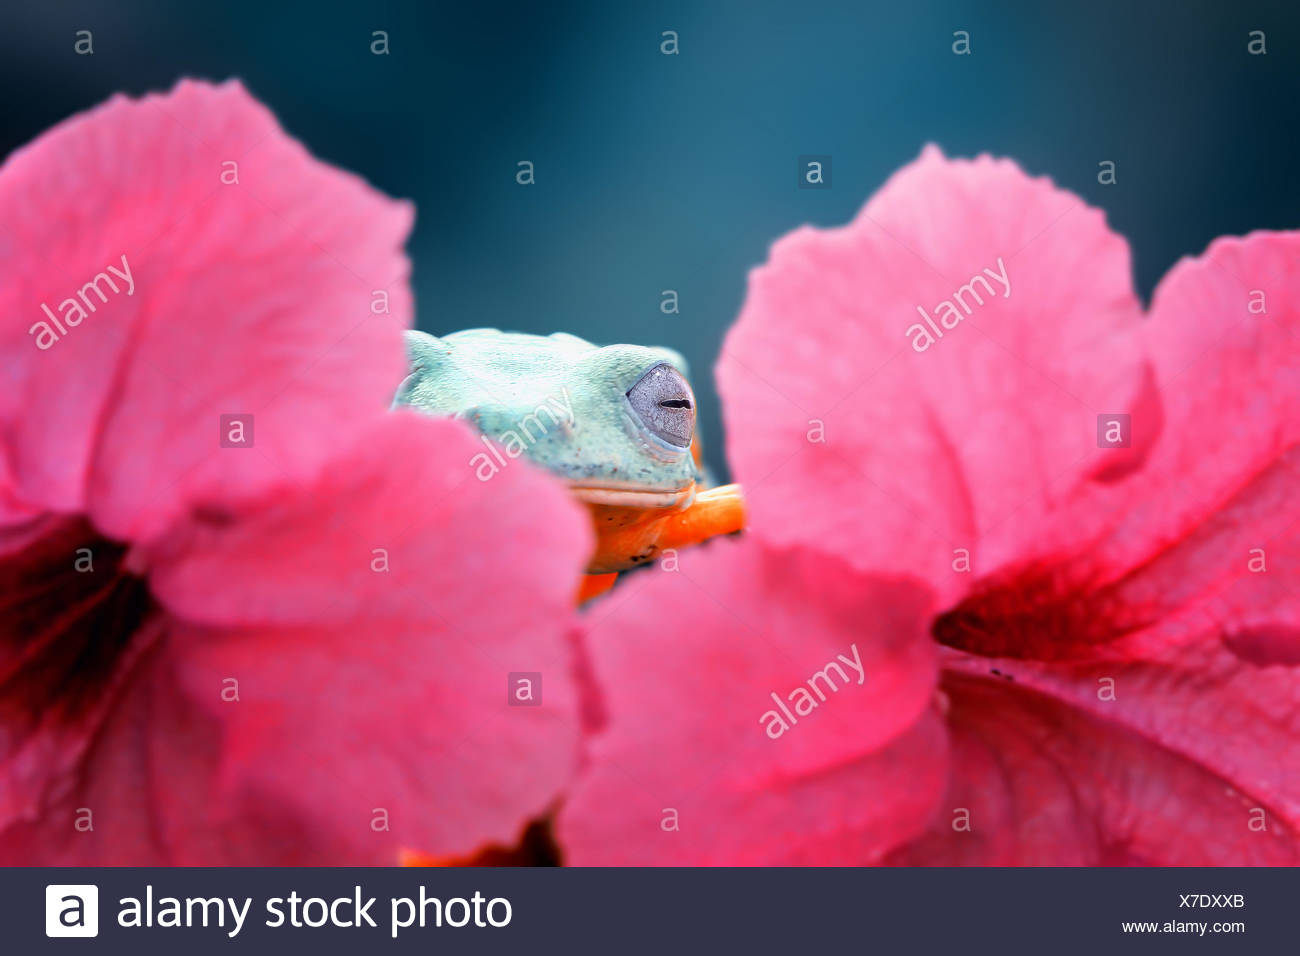 Tree frog hiding behind a flower, Indonesia Stock Photo